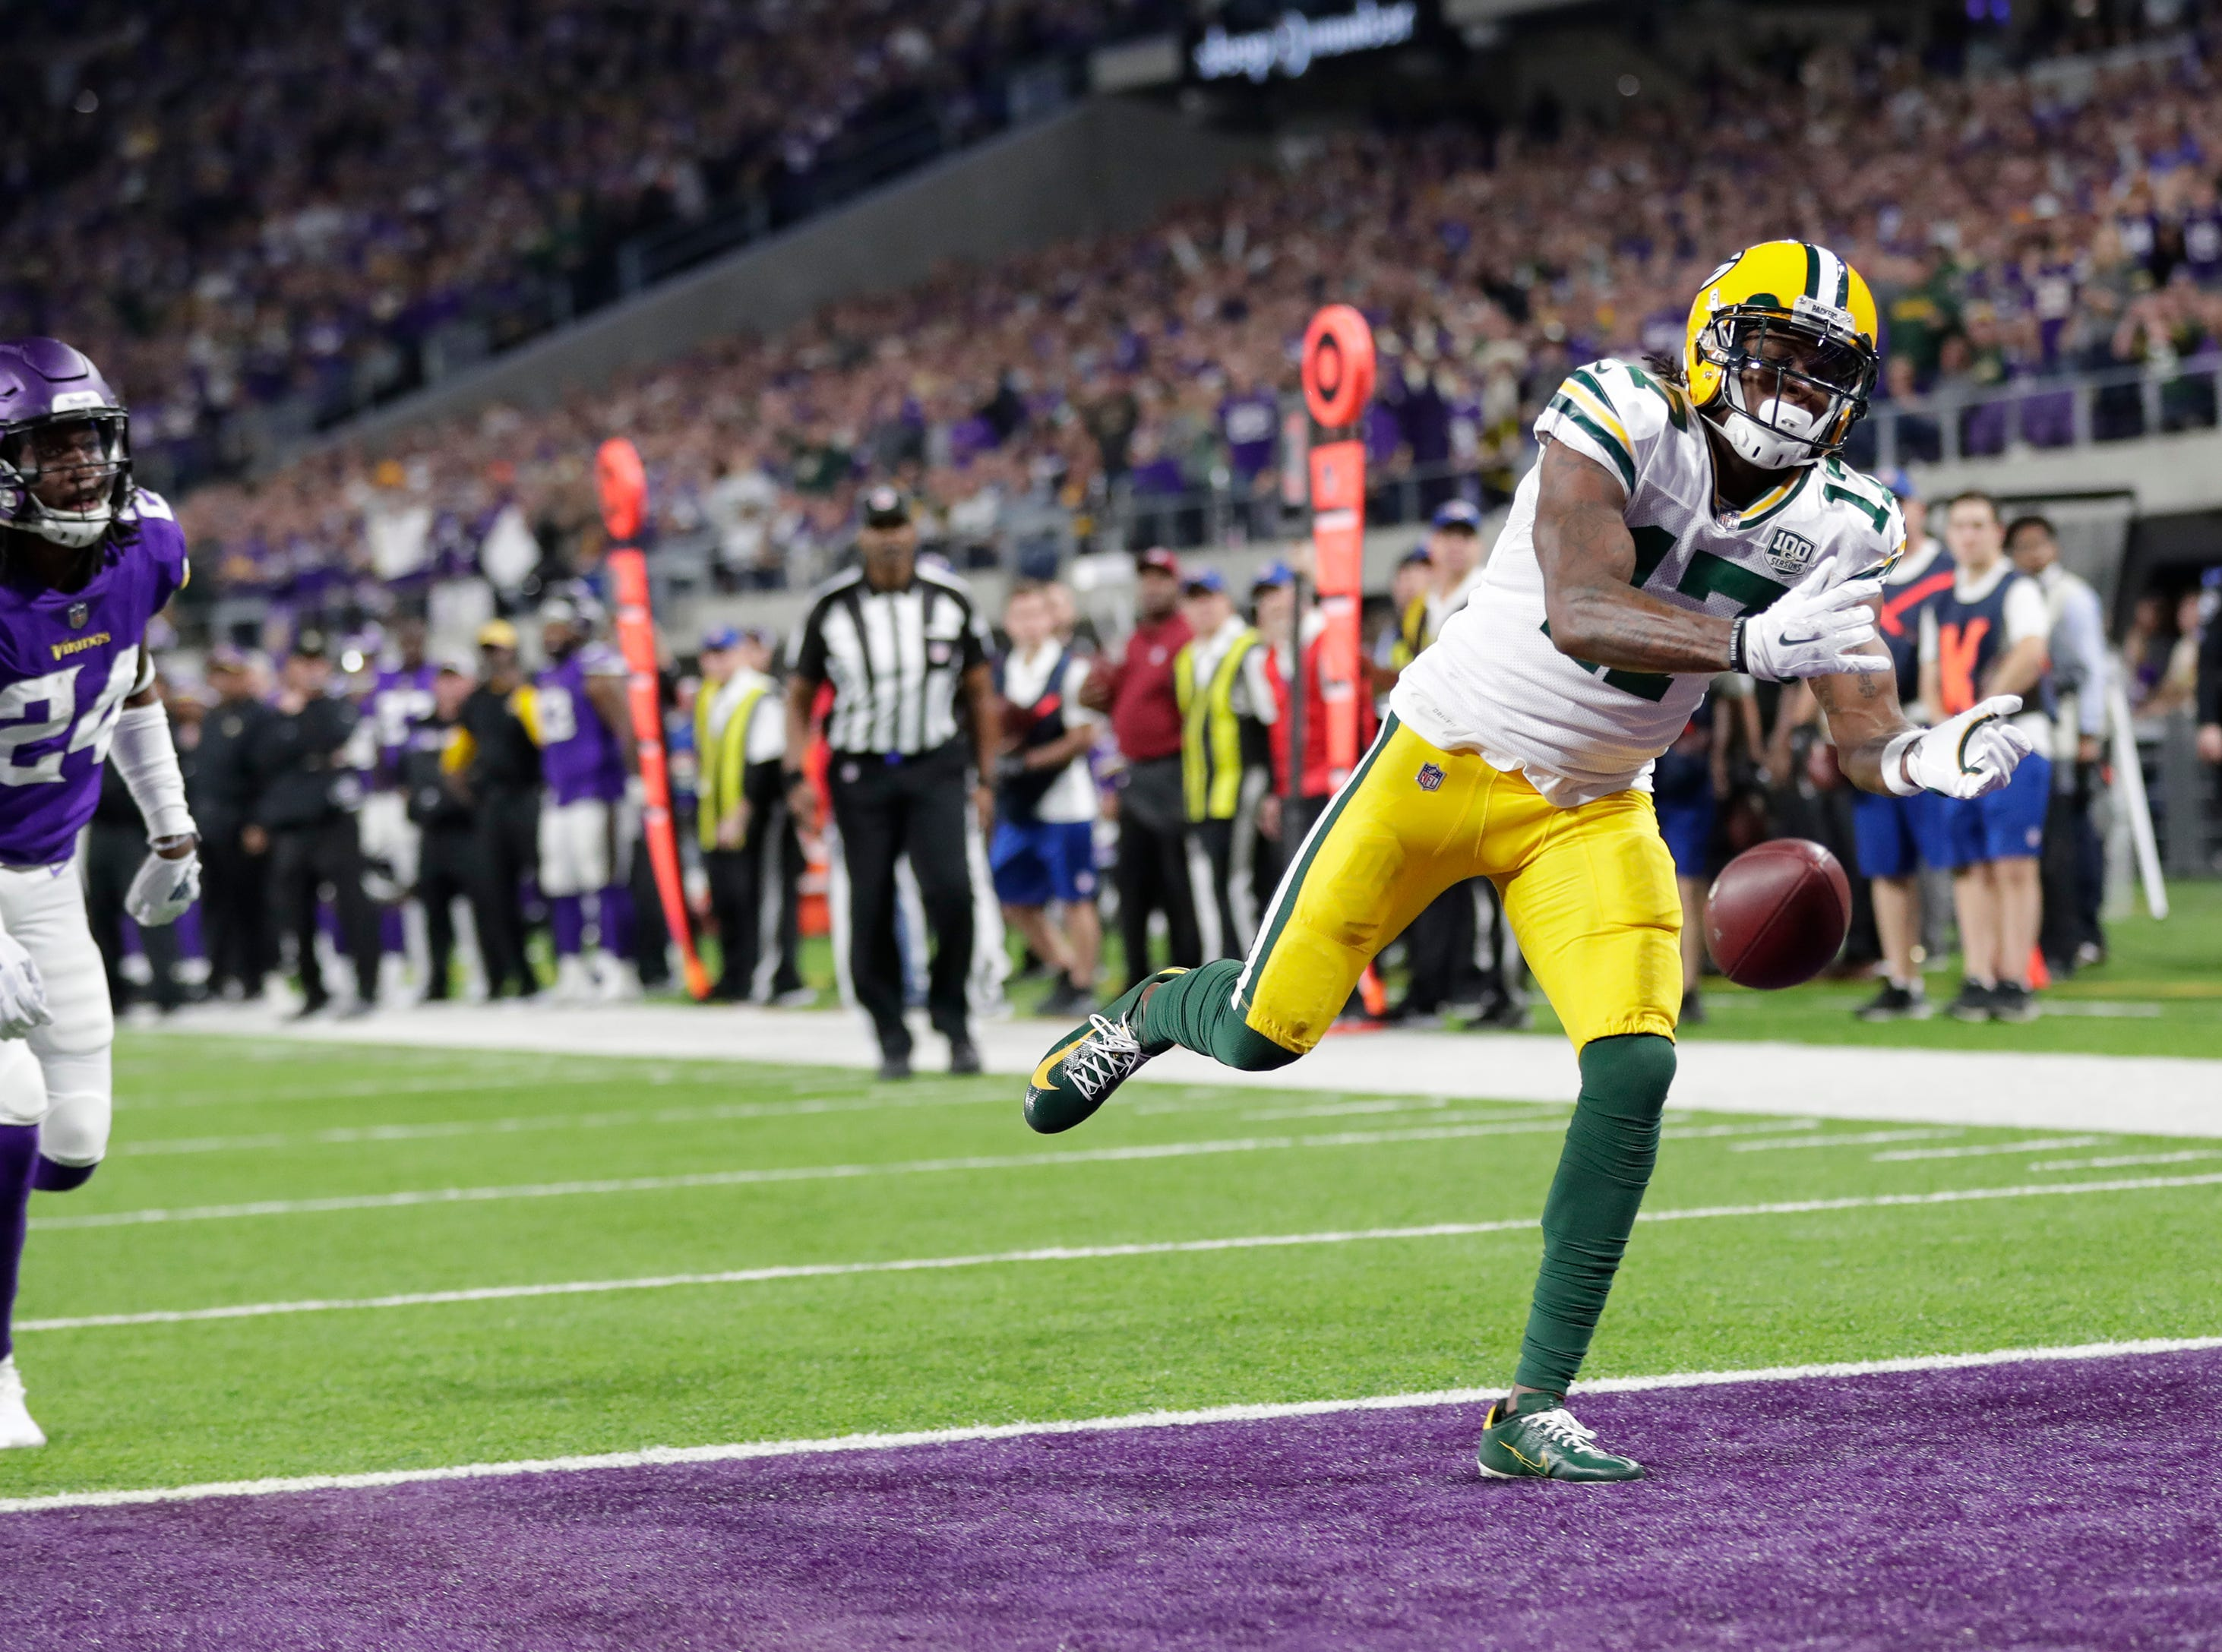 Green Bay Packers wide receiver Davante Adams (17) can't come up with a catch in the end zone against Minnesota Vikings defensive back Holton Hill (24) late in the fourth quarter during their football game Sunday, November 25, 2018, at U.S. Bank Stadium in Minneapolis, Minn. Dan Powers/USA TODAY NETWORK-Wisconsin